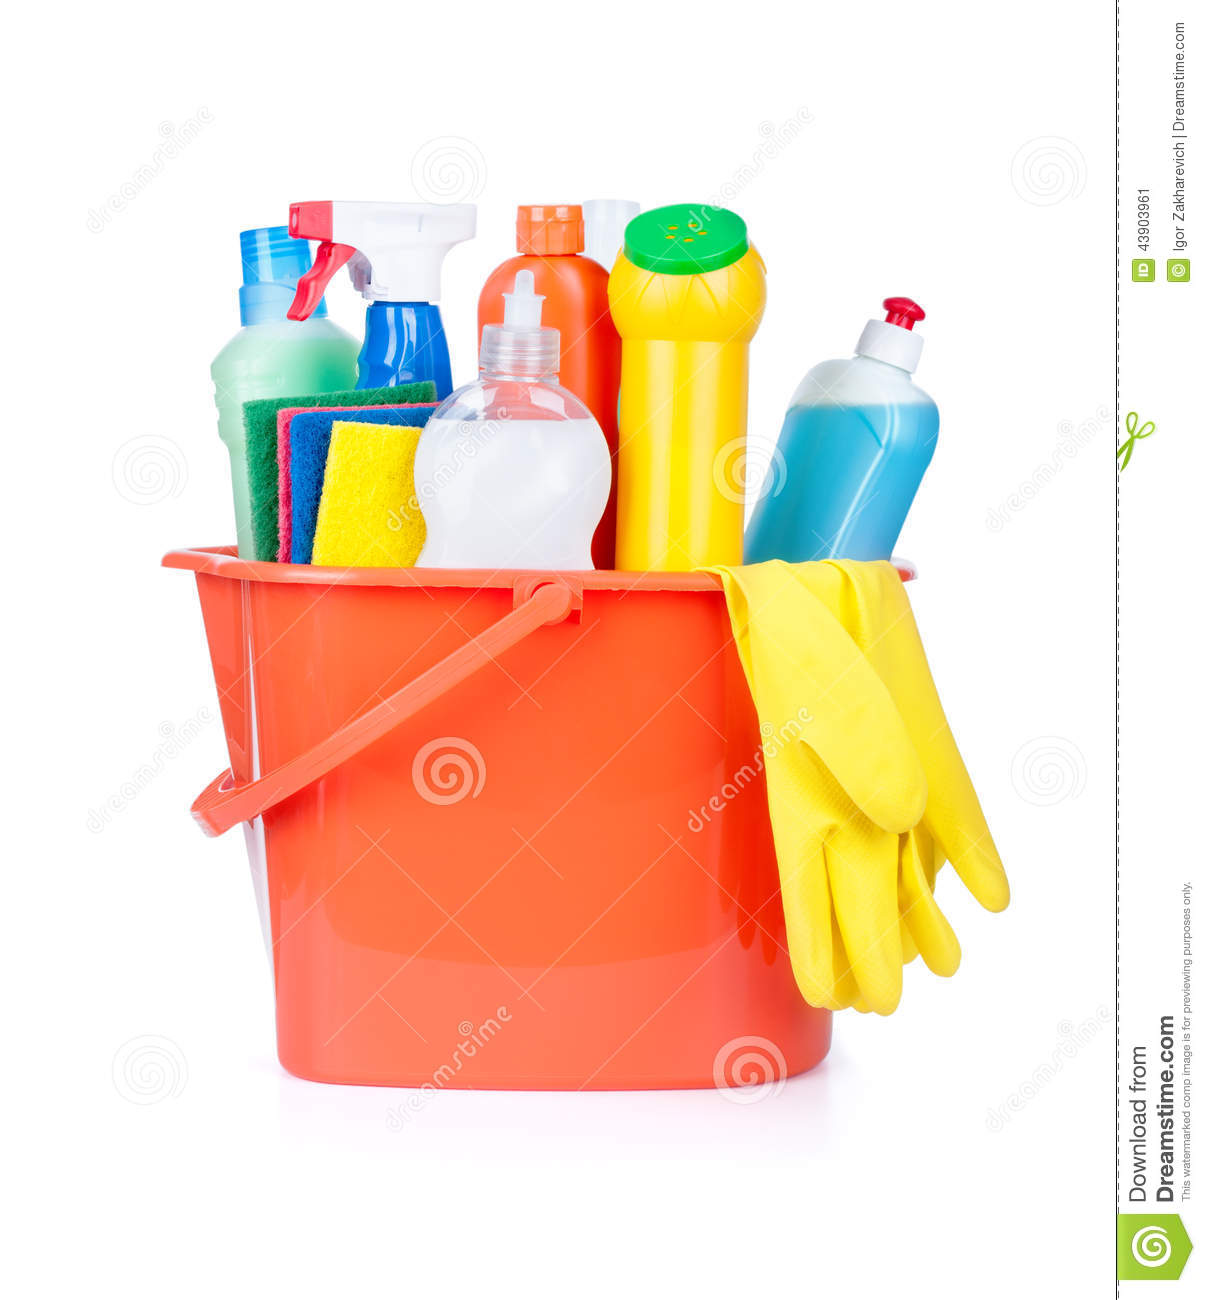 Plastic Bucket With Cleaning Supplies Stock Photo Image